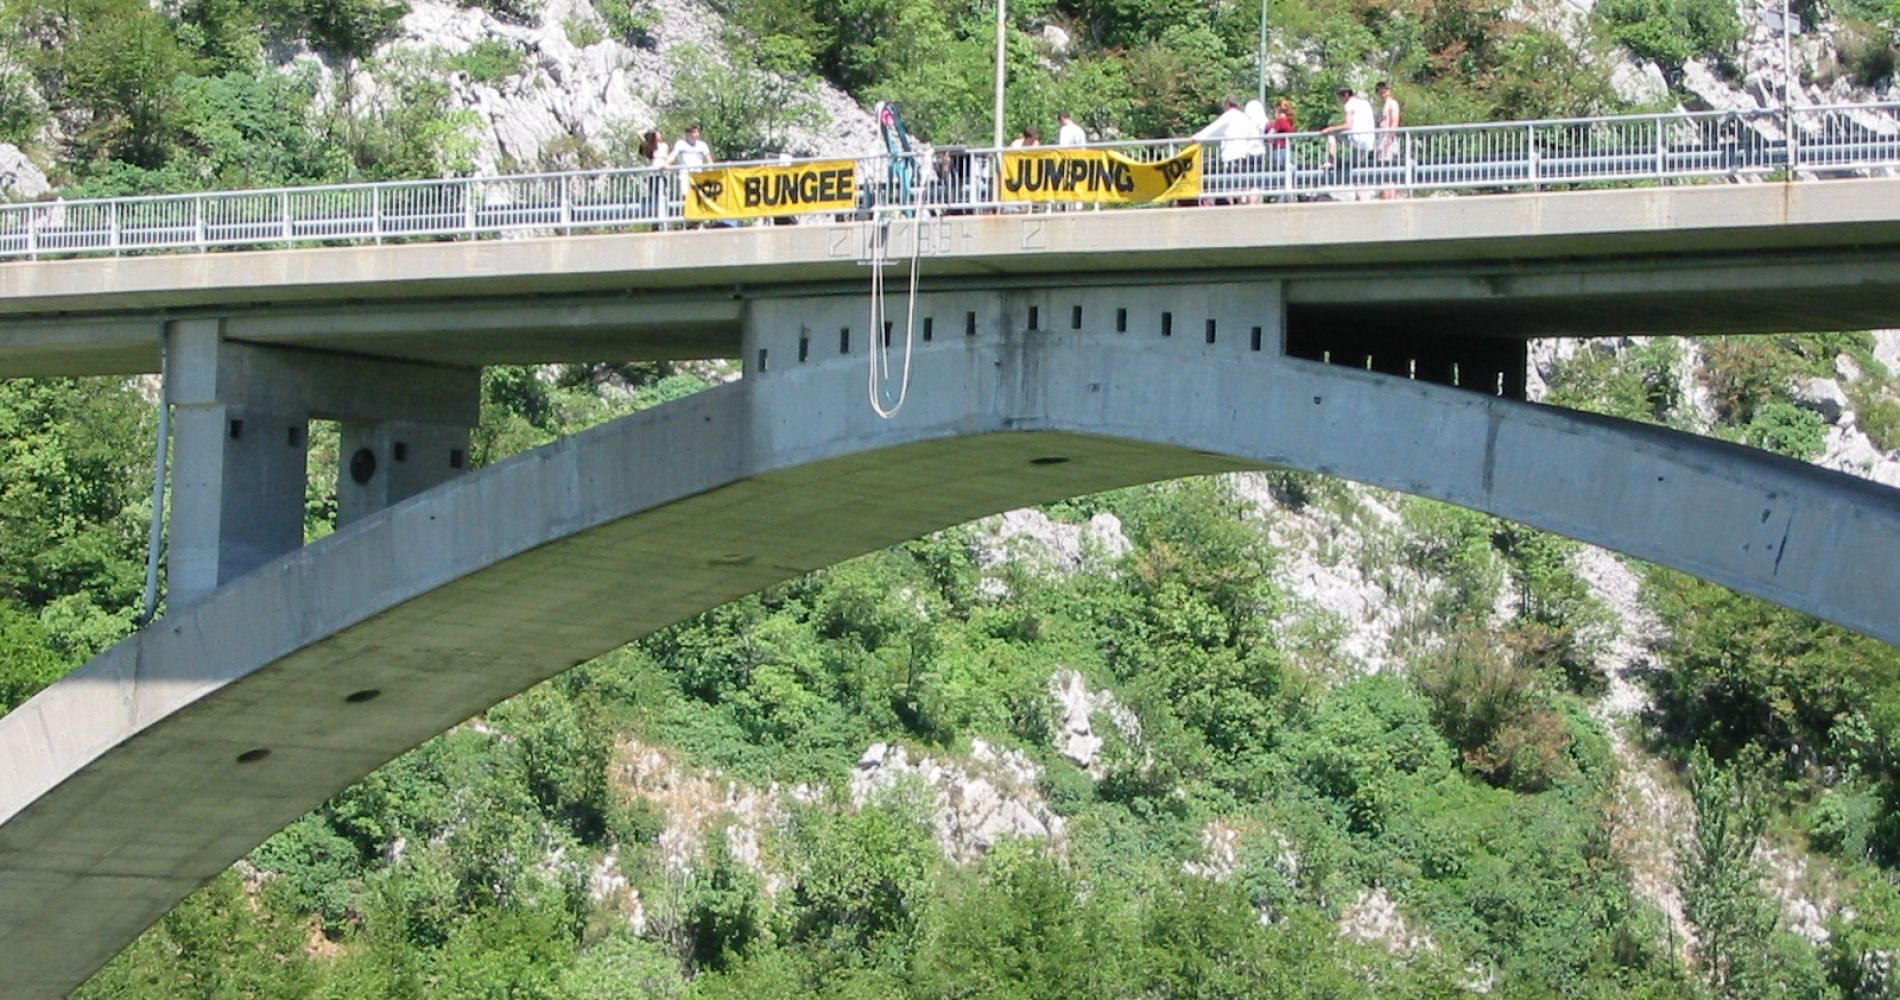 Bungee jump Solkan bridge Slovenia Tinggly Experience Gifts